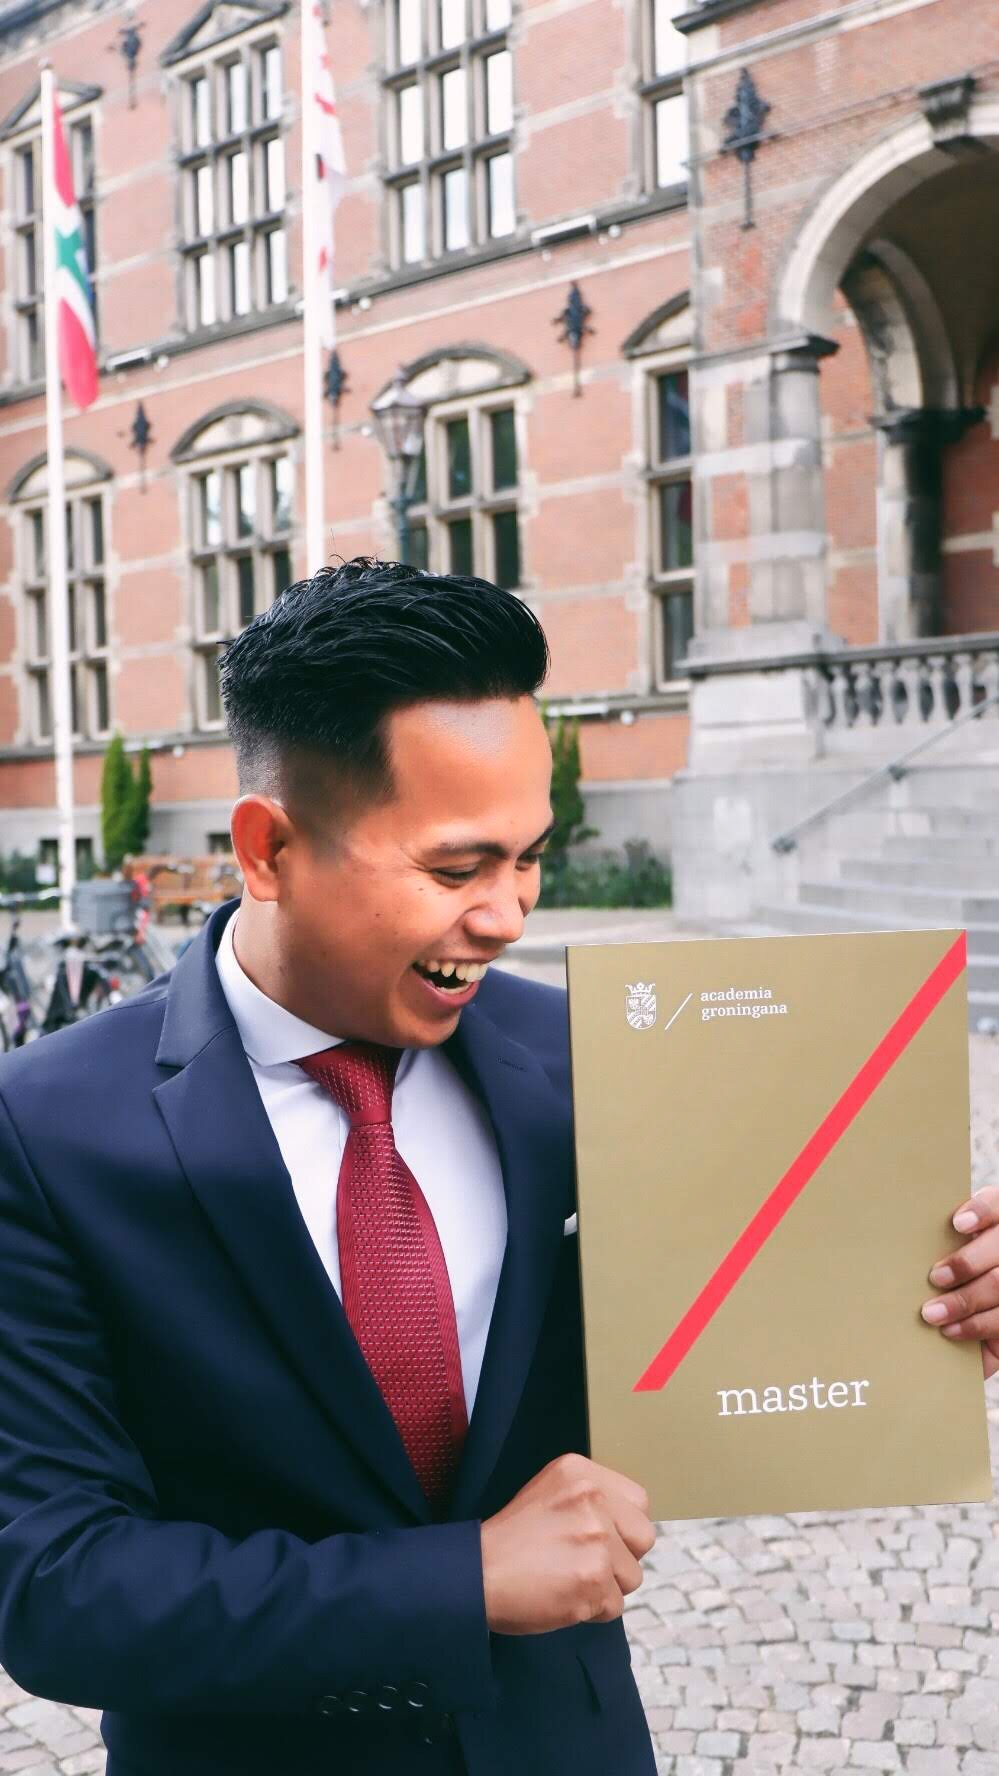 Scott's happy face on his graduation day at the University of Groningen